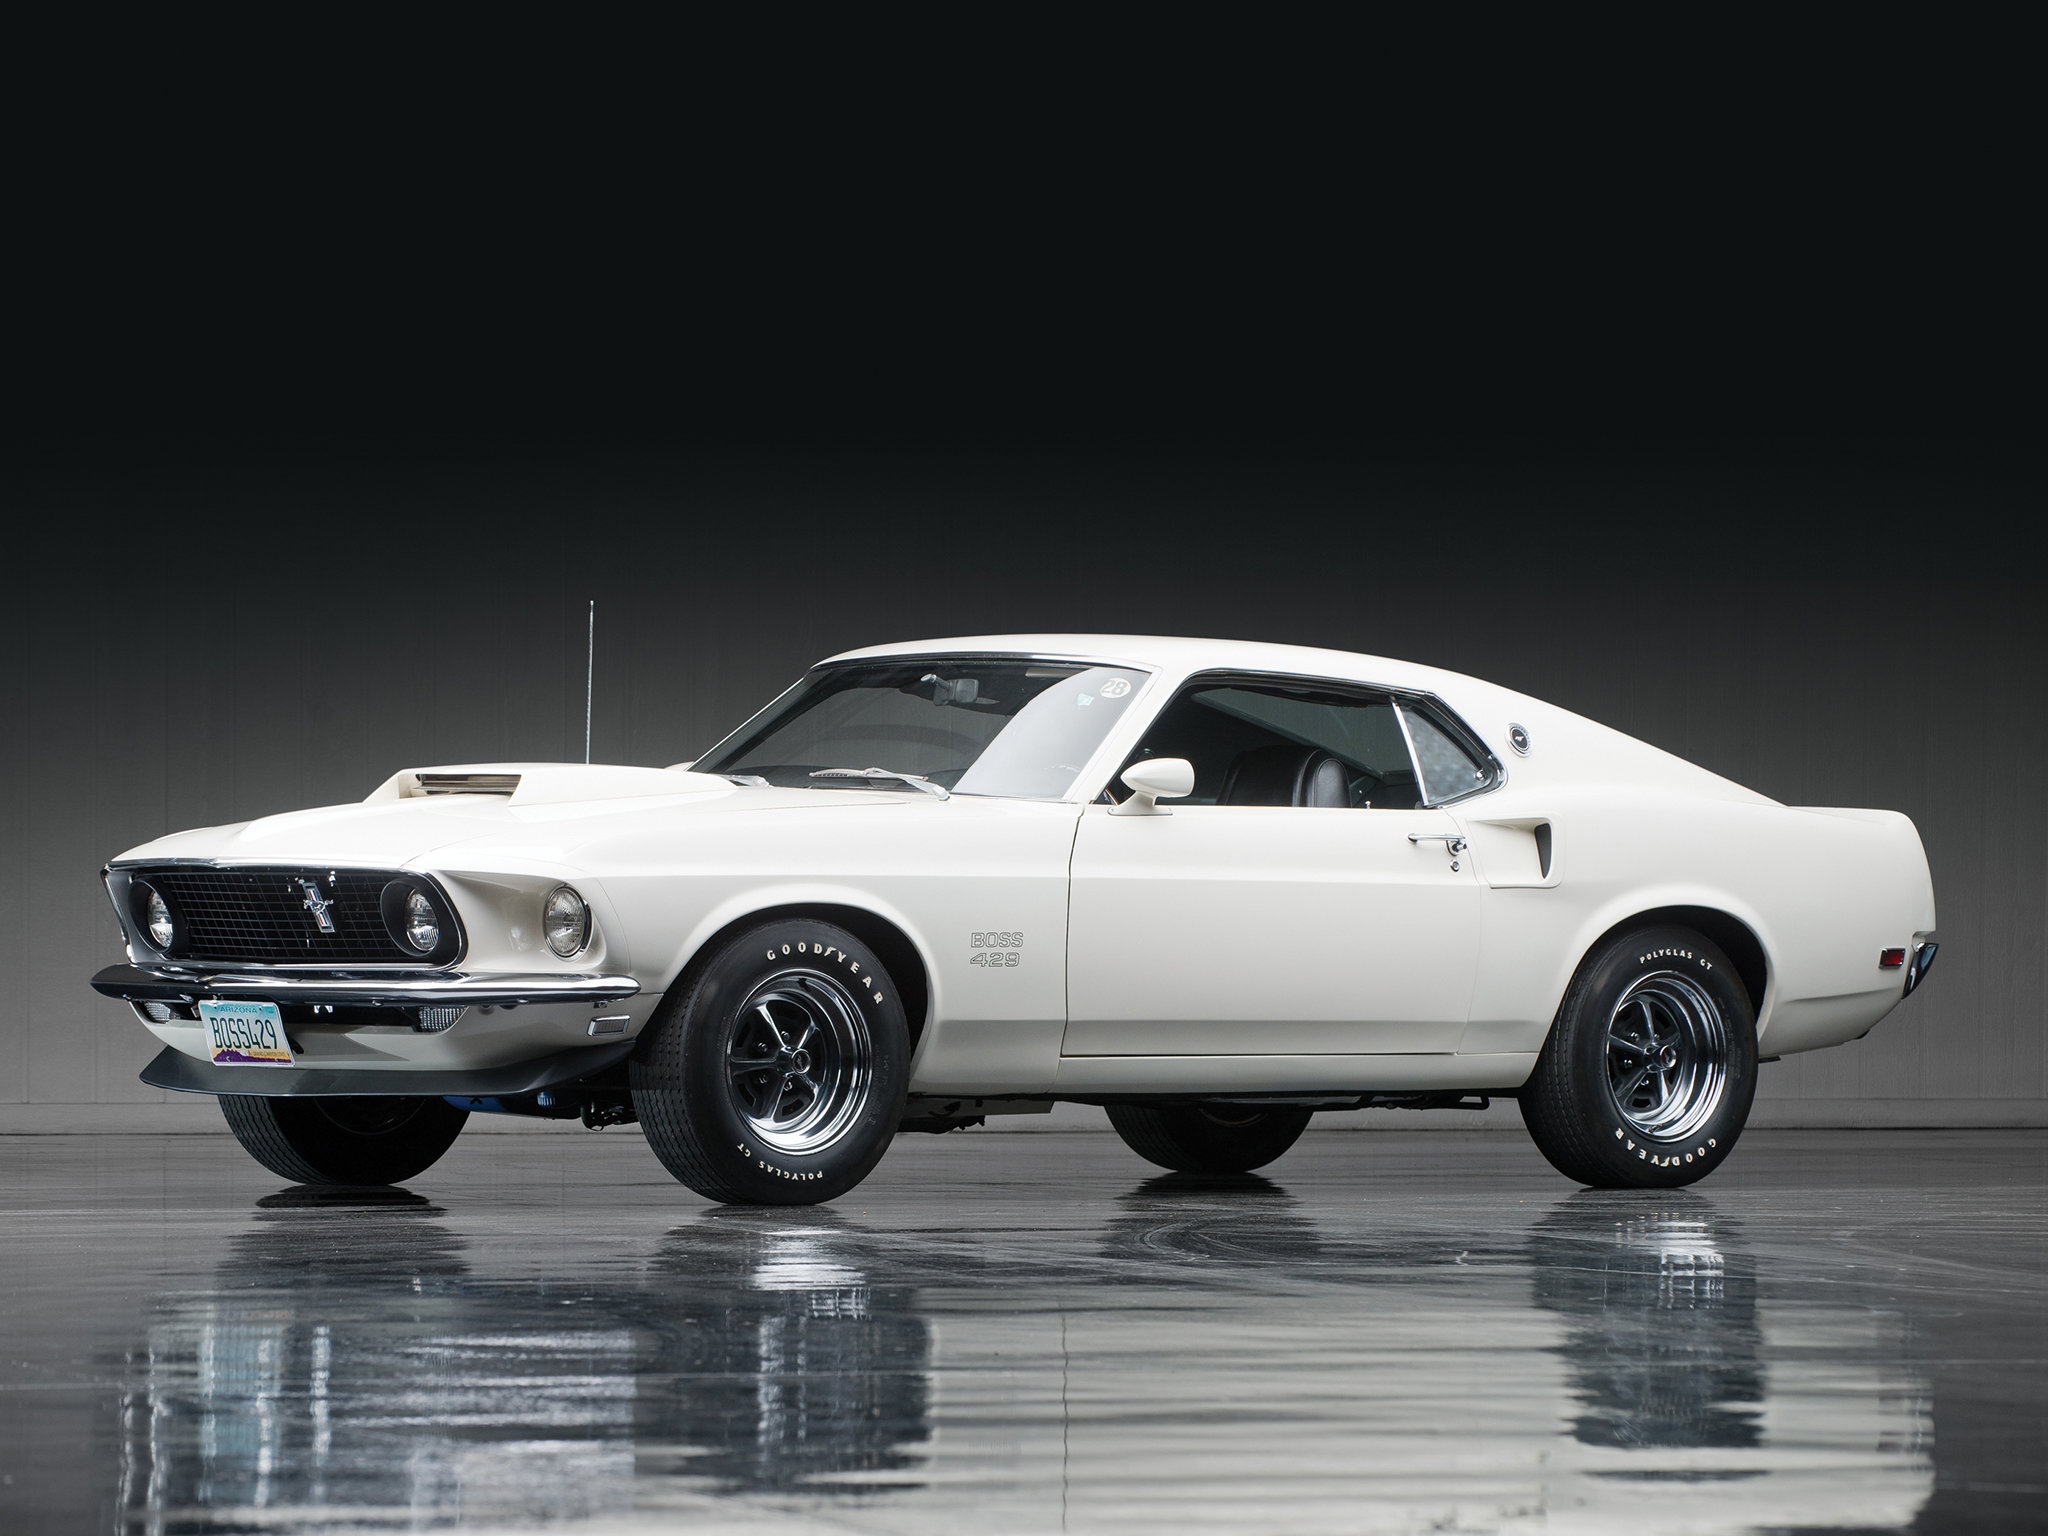 Ford Mustang Boss 1969 Wallpapers Hd For Desktop Backgrounds